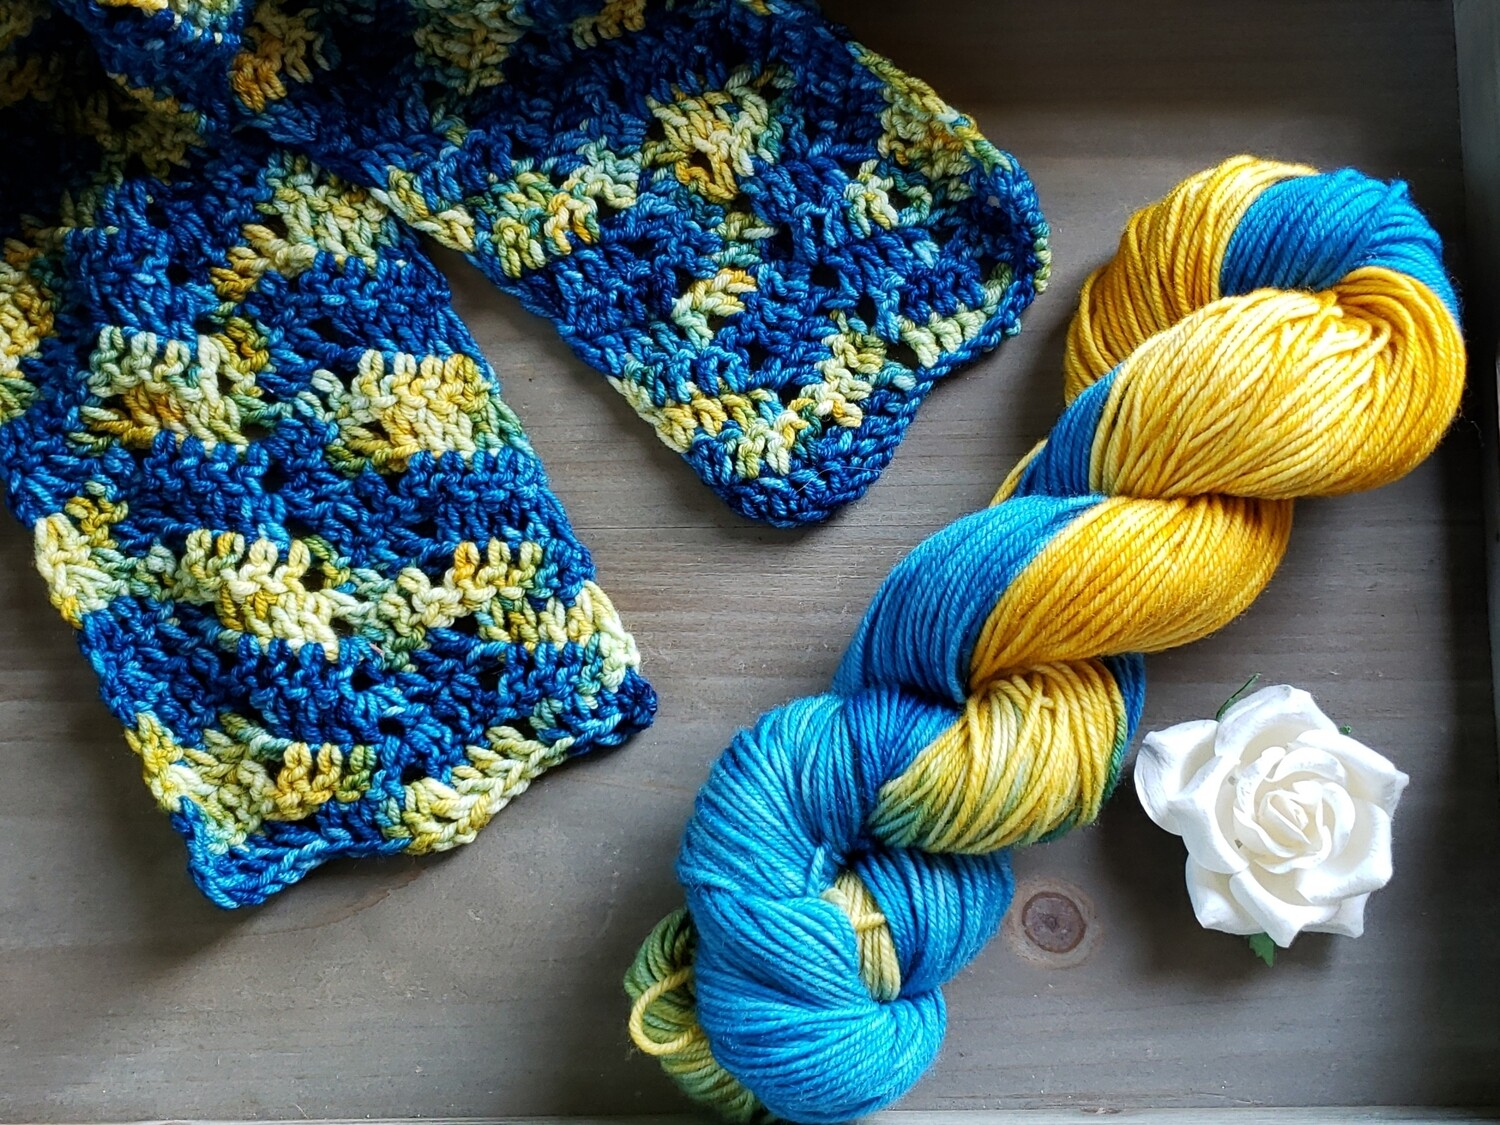 Starry Night Scarf Crochet Kit